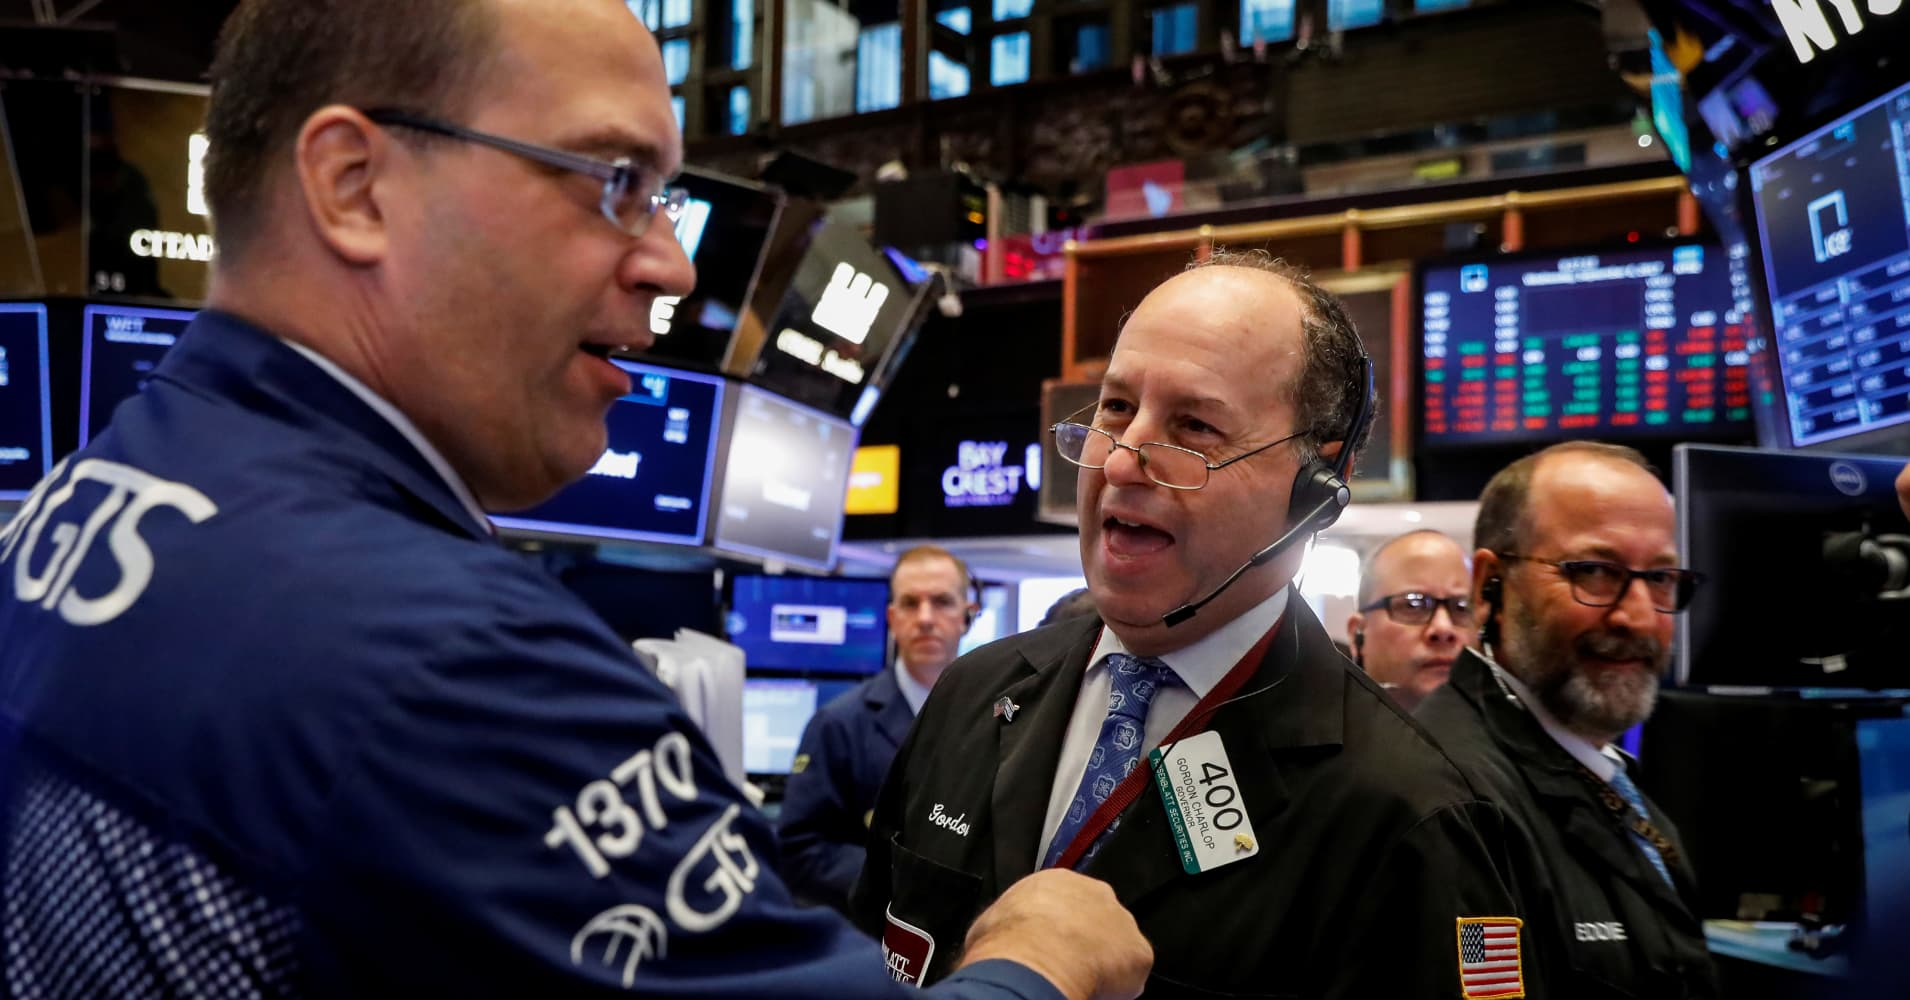 US stock futures pull back after Dow notched strong triple-digit gain on Wednesday